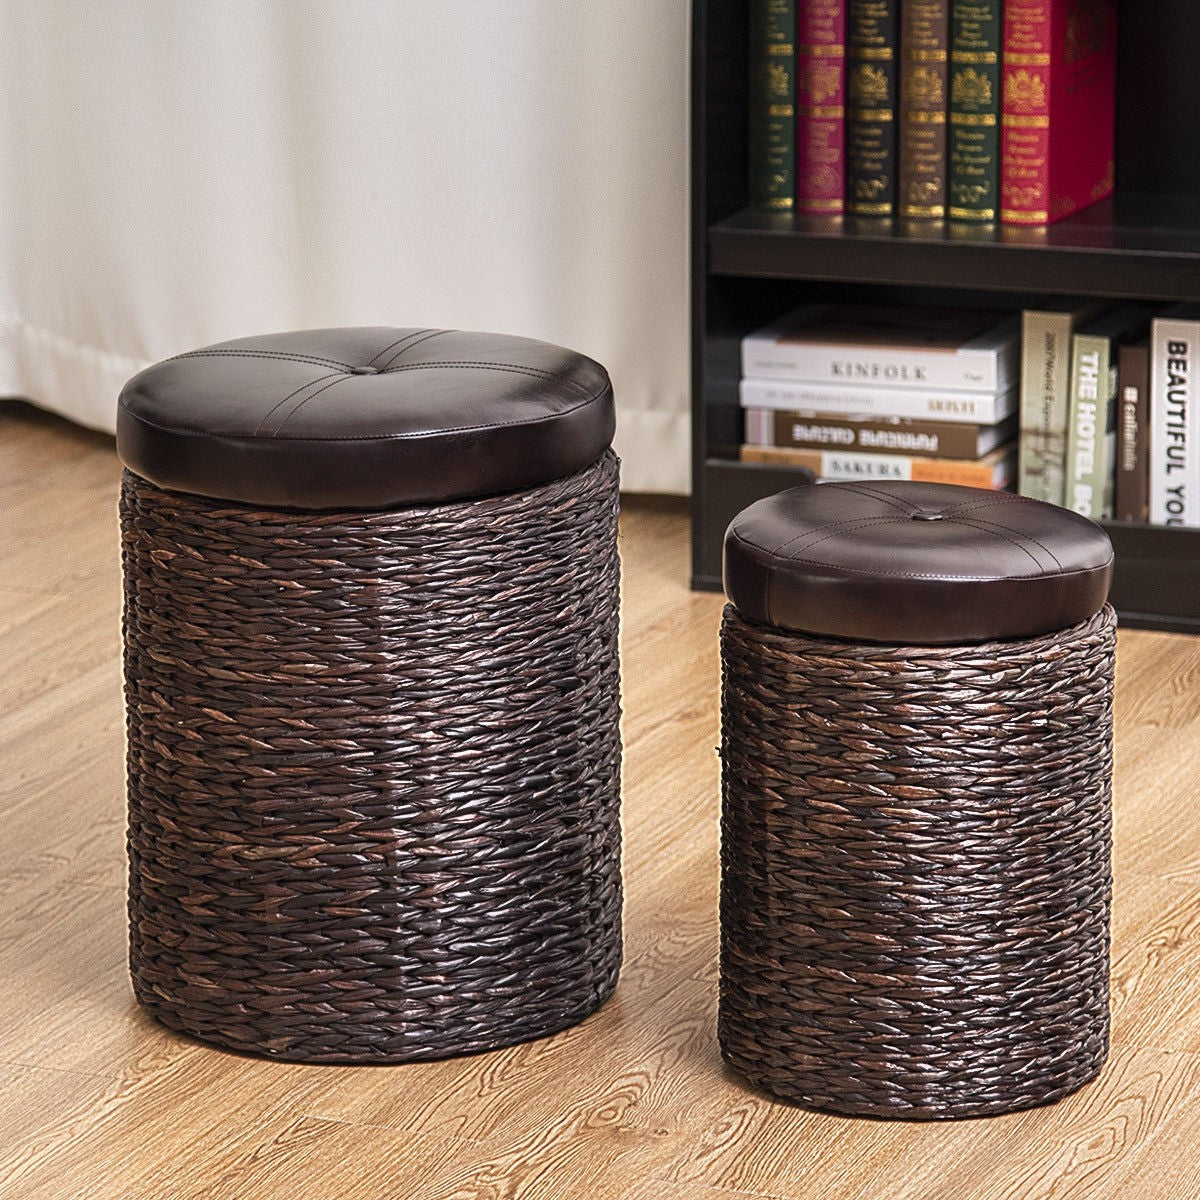 ... 2 Pcs Rattan Leather Seating Storage Stools Ottoman